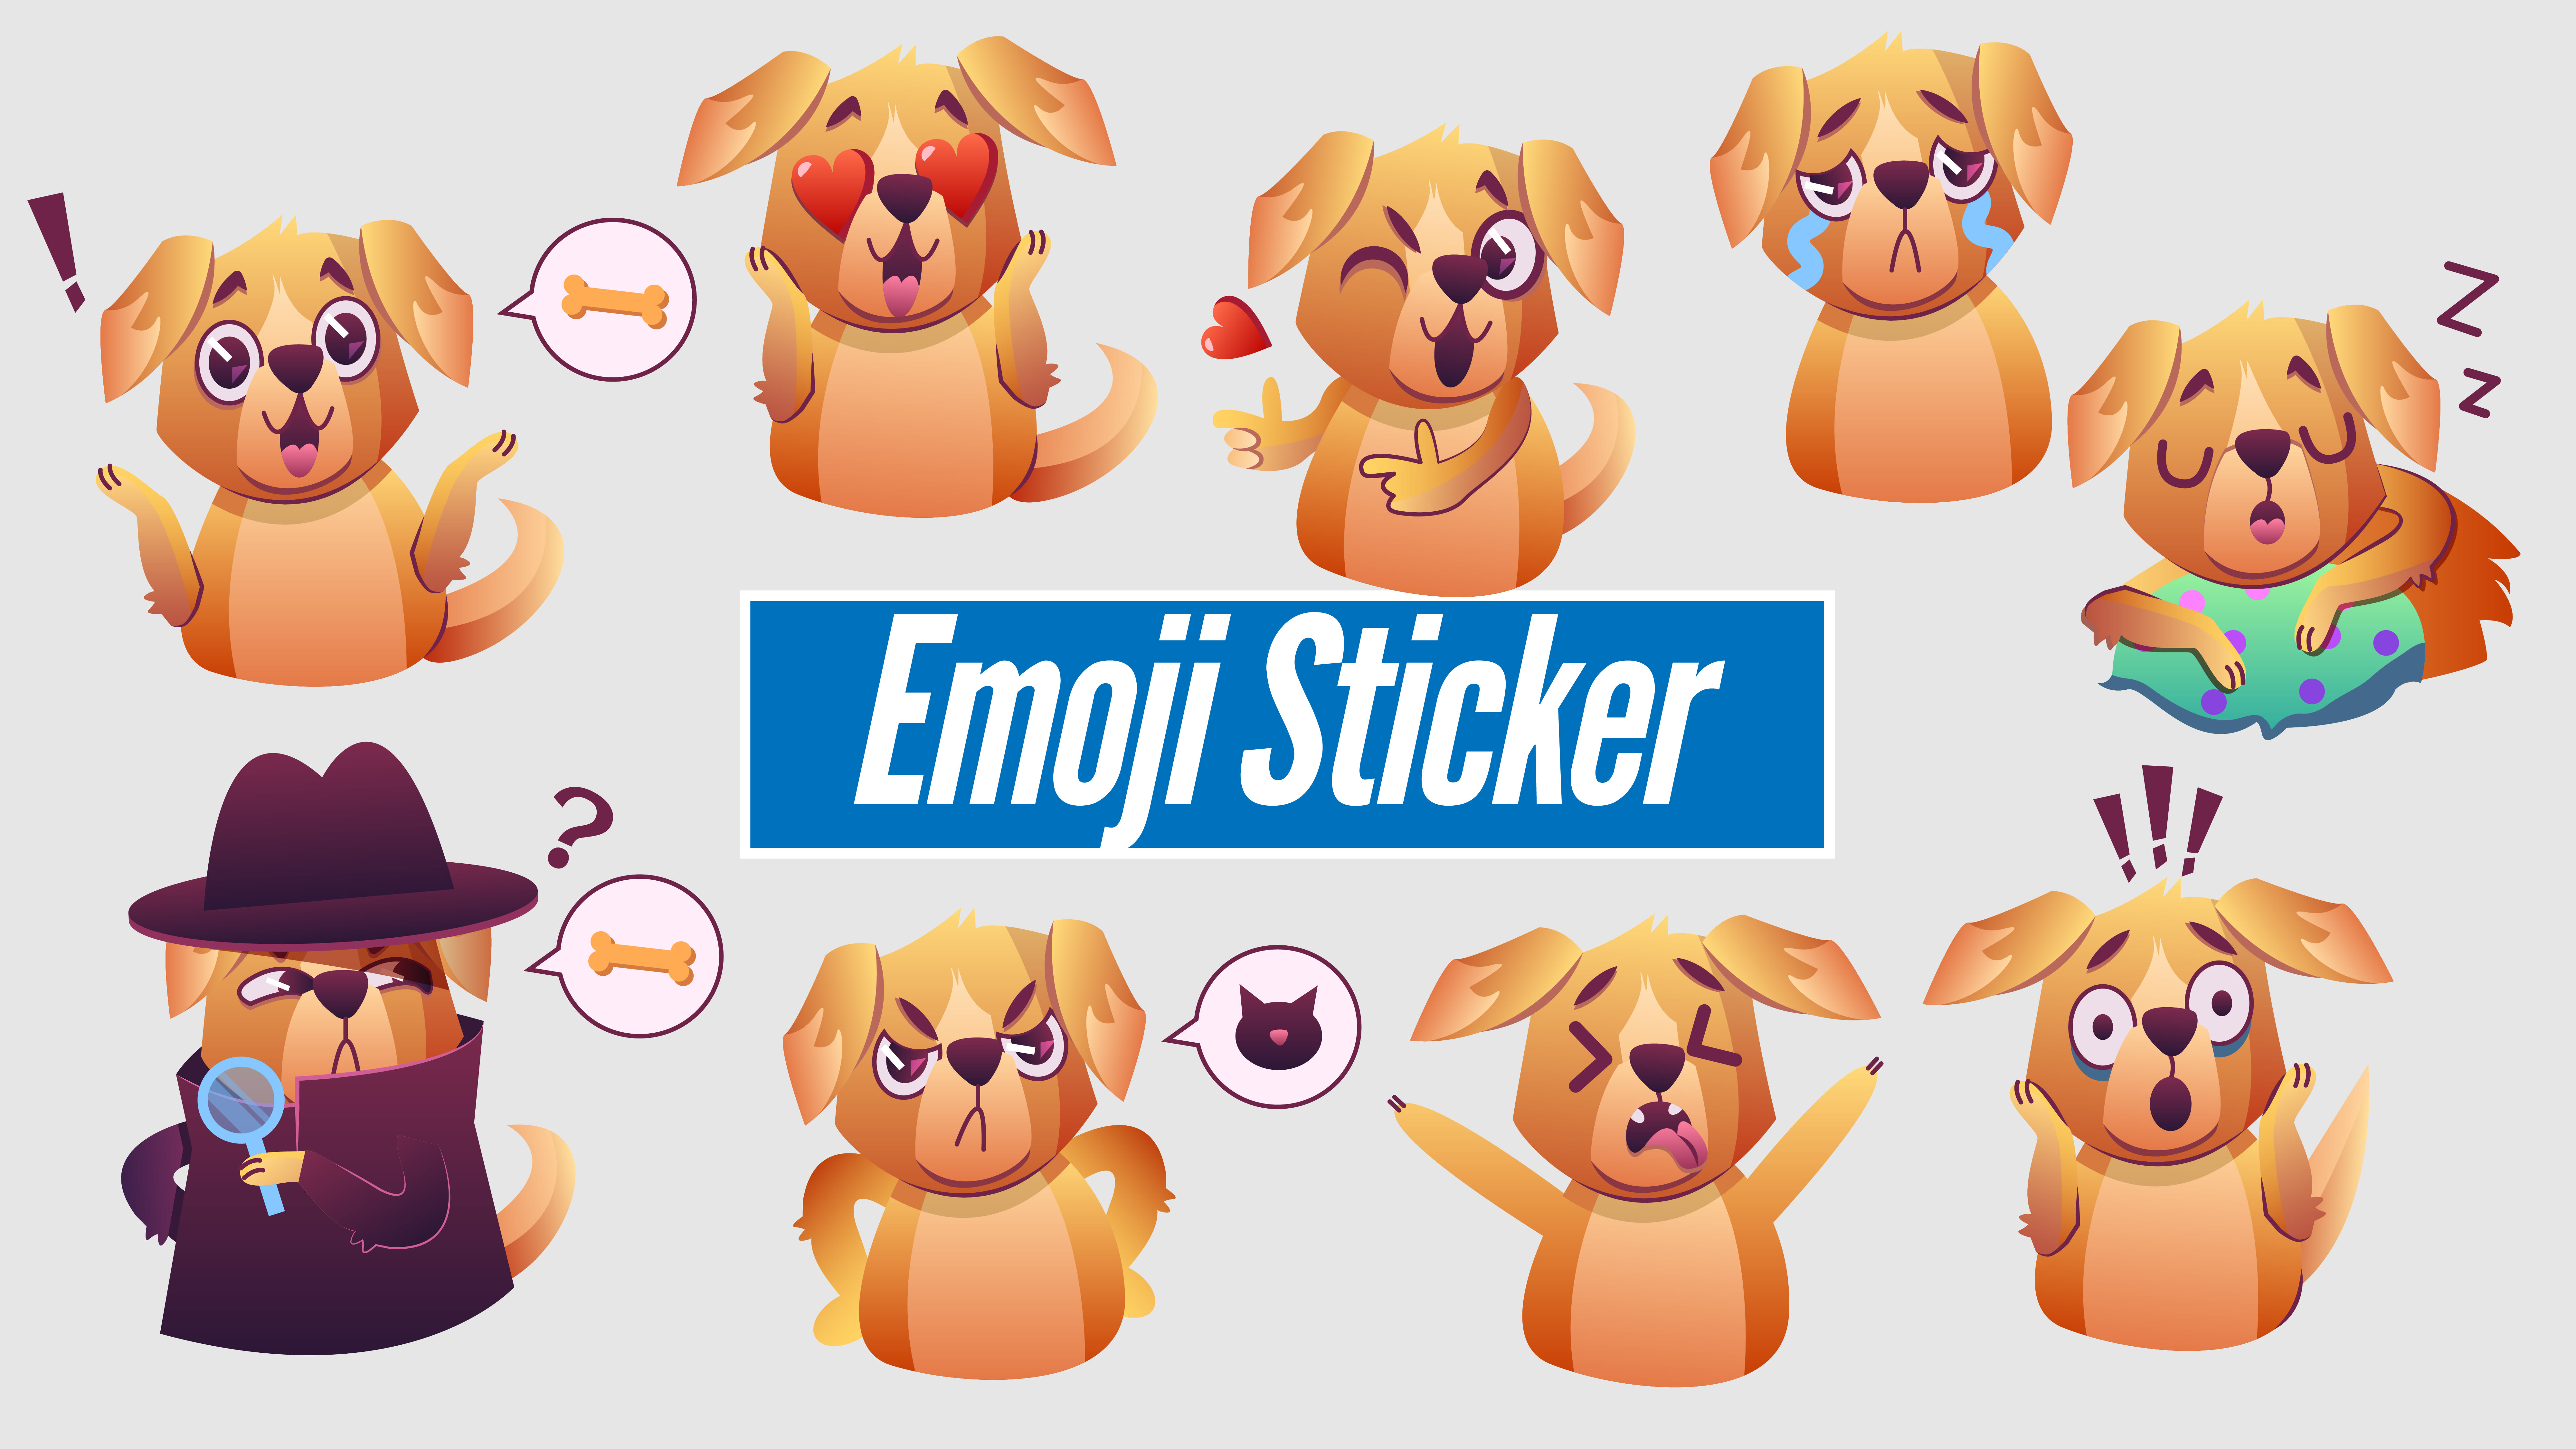 Draw custom emoji chat stickers or any emoticons by love arts